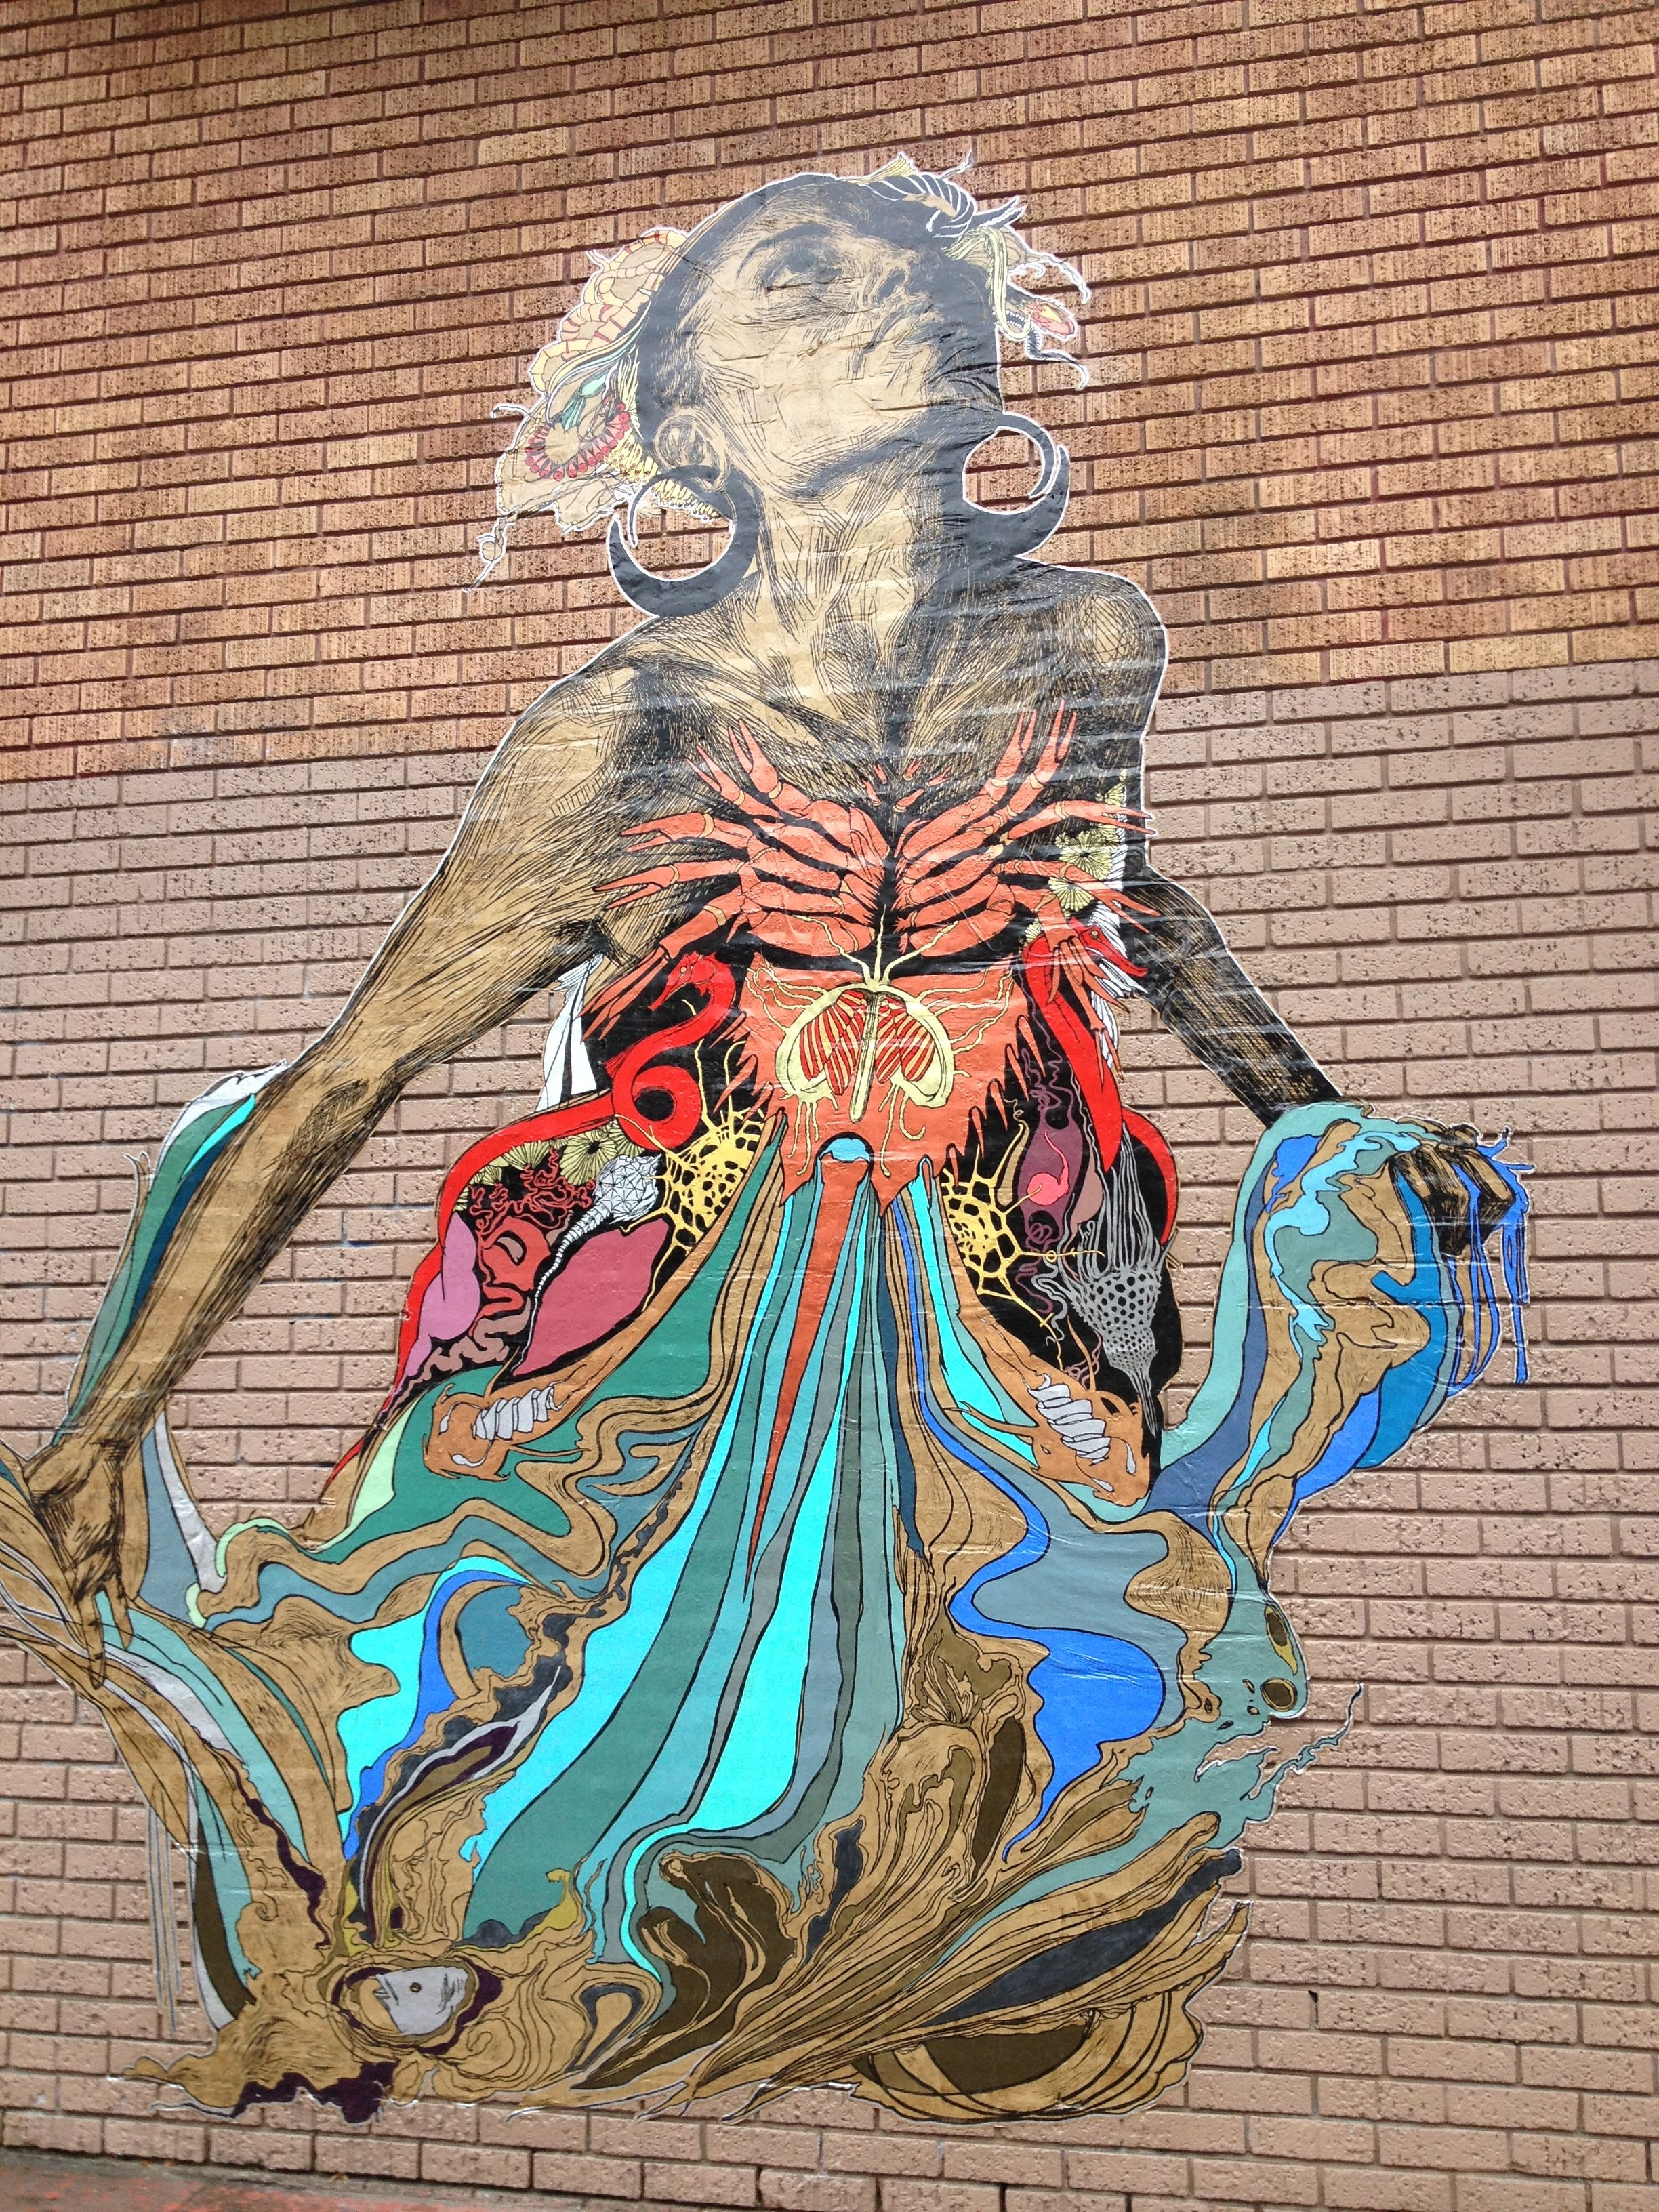 One of Swoon's pieces in the Mission, San Pancho, 2012.